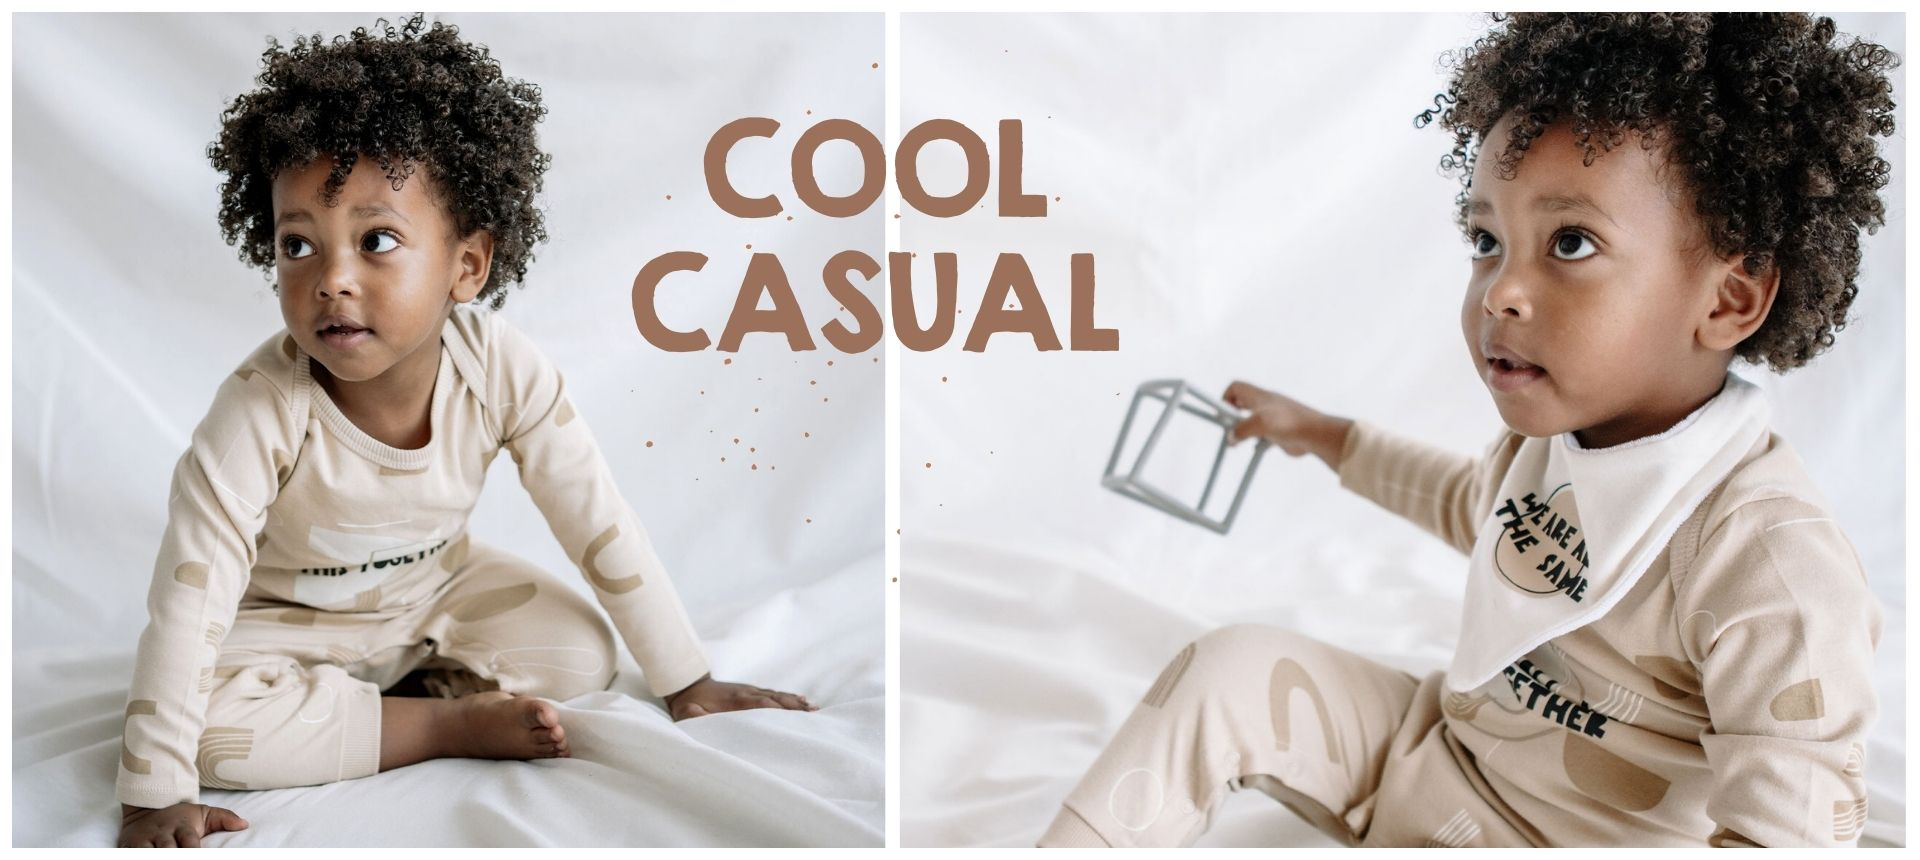 COOL CASUAL